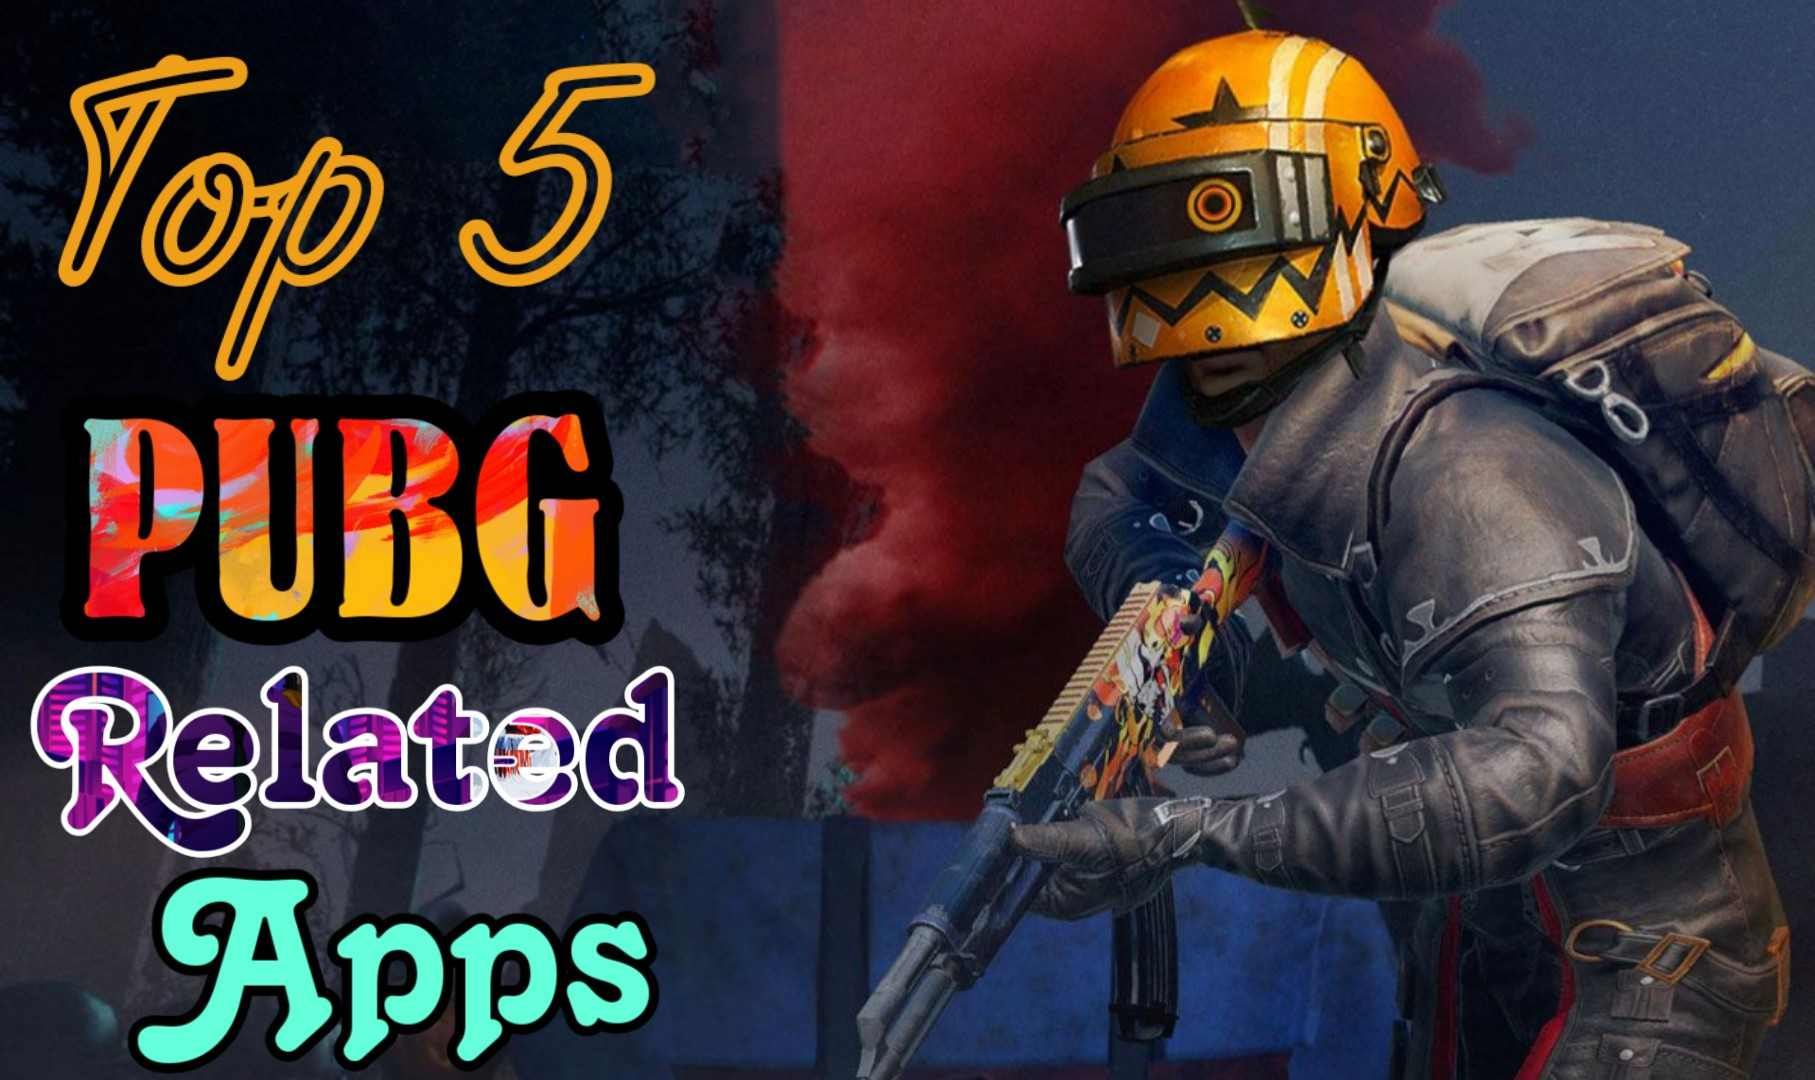 Top 5 PUBG Mobile Game Related Apps